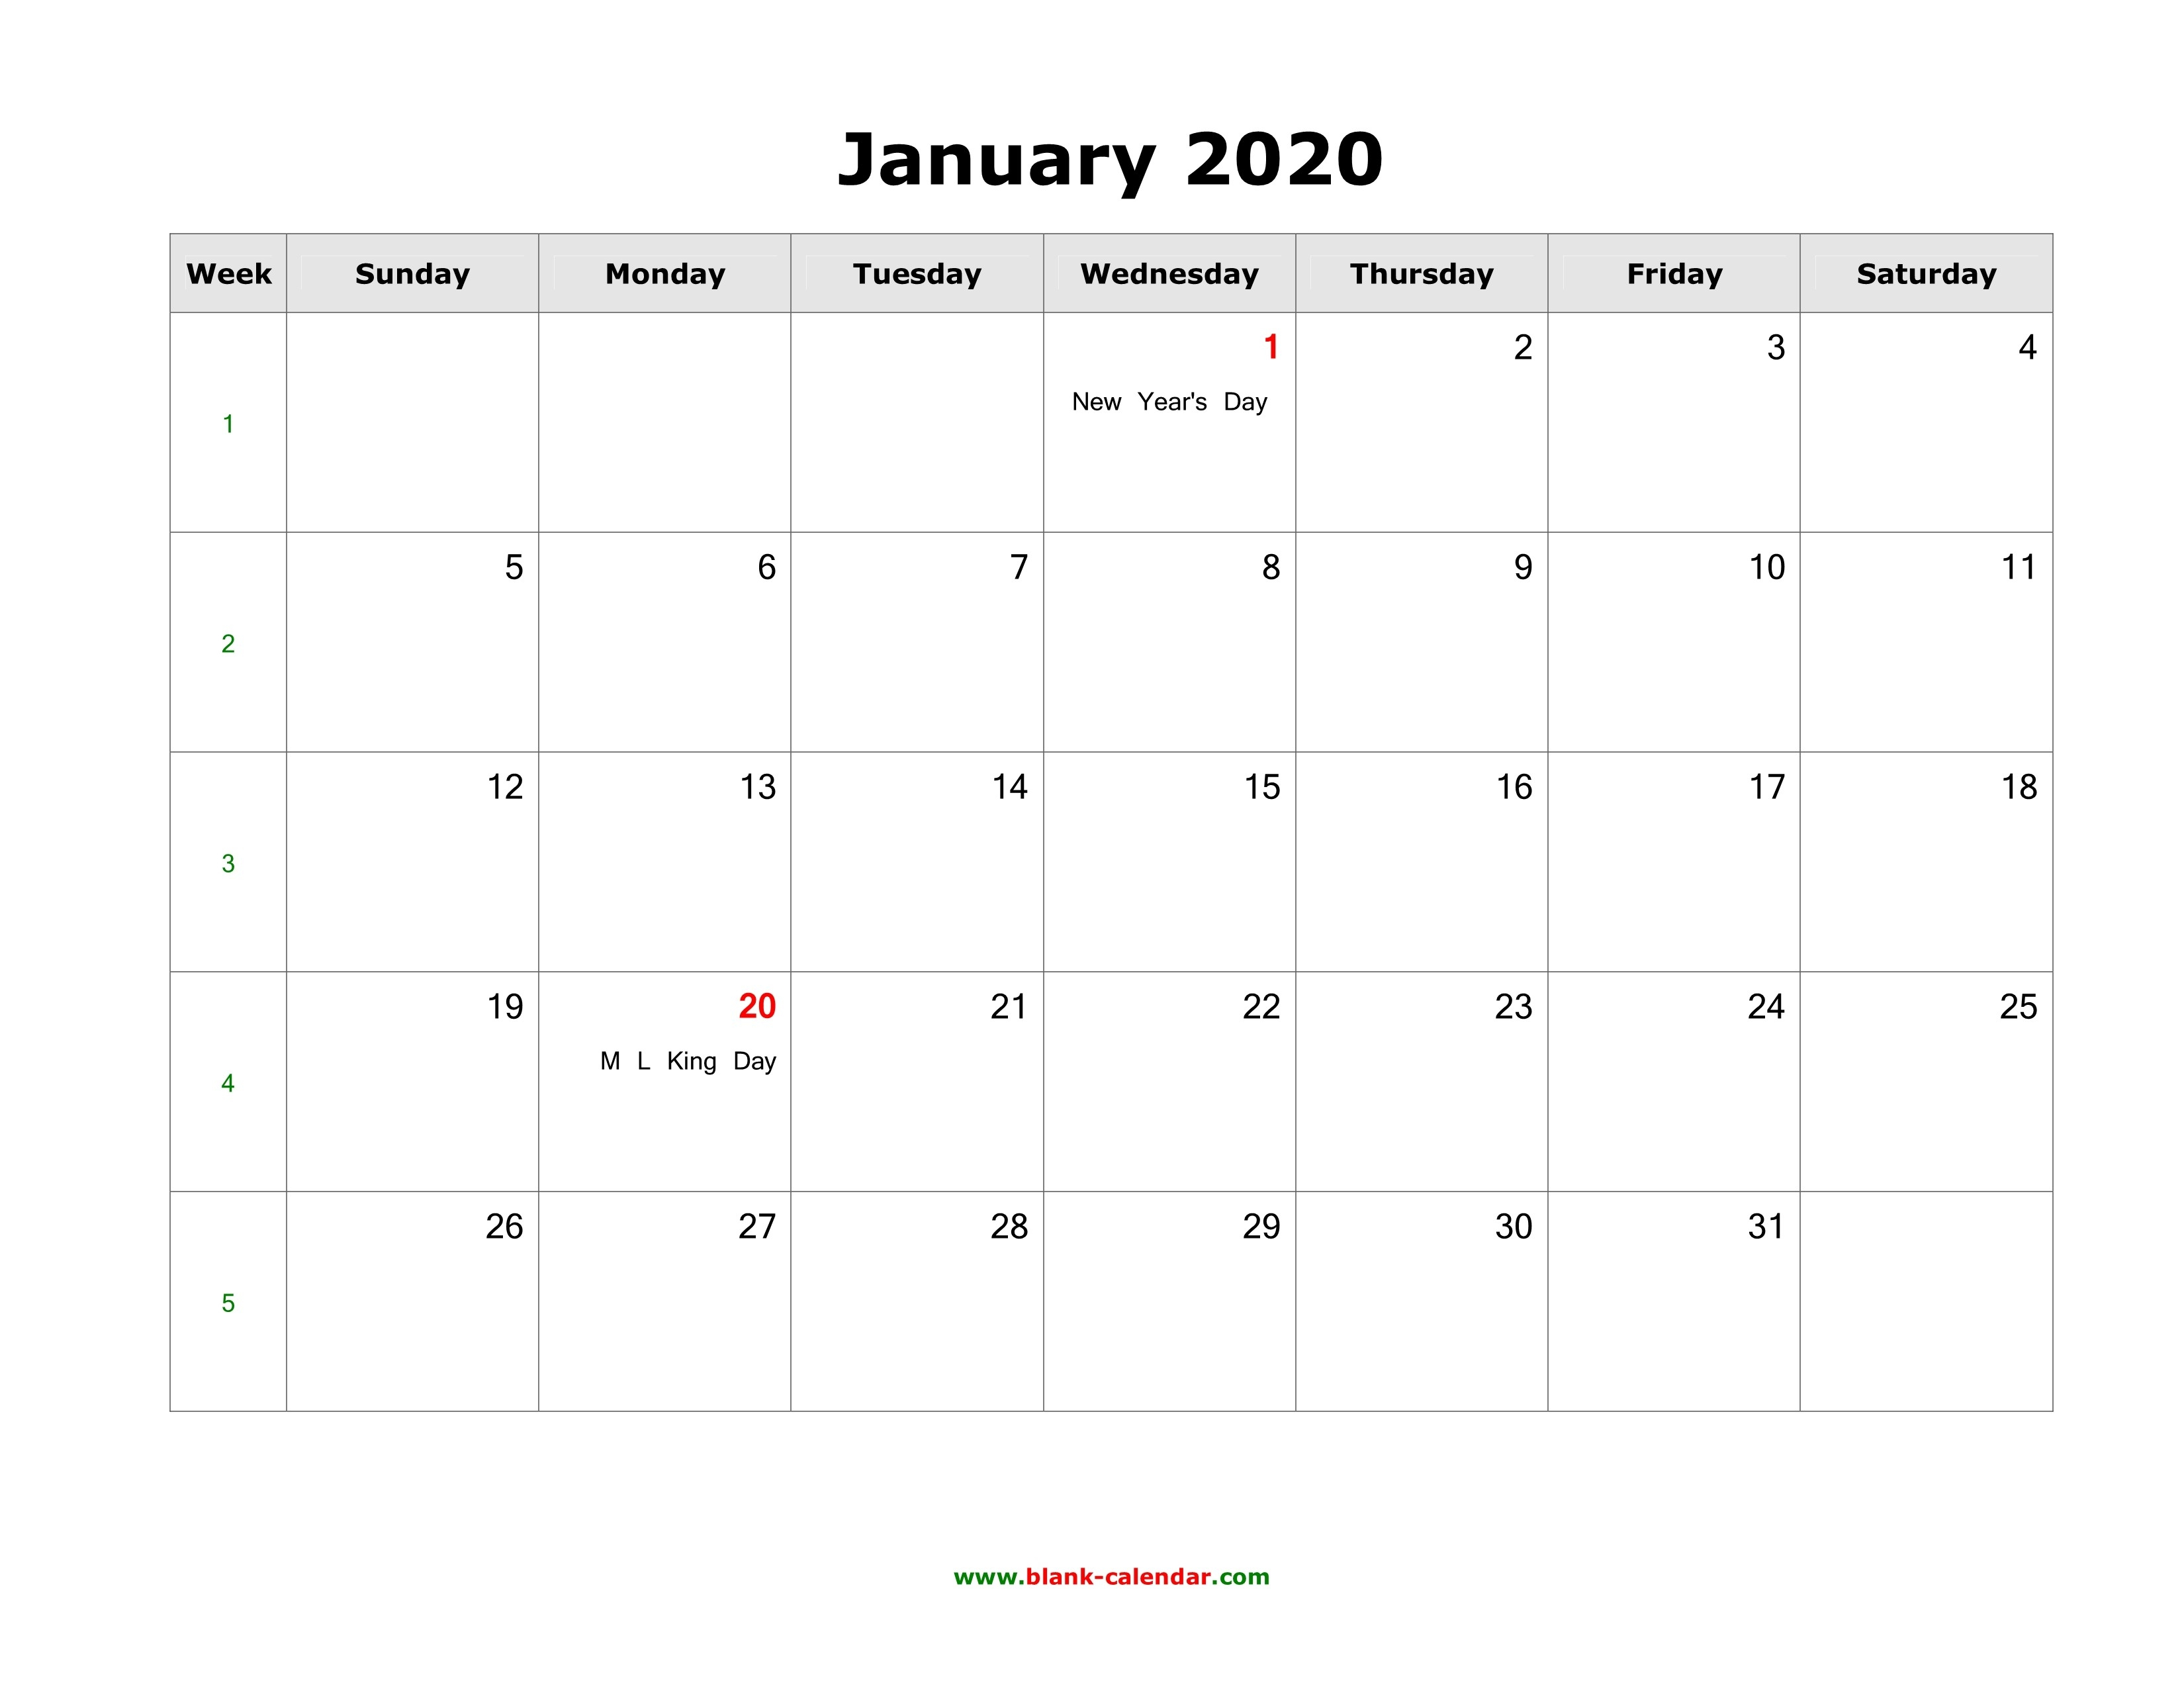 Download January 2020 Blank Calendar With Us Holidays-January 2020 Calendar With Us Holidays